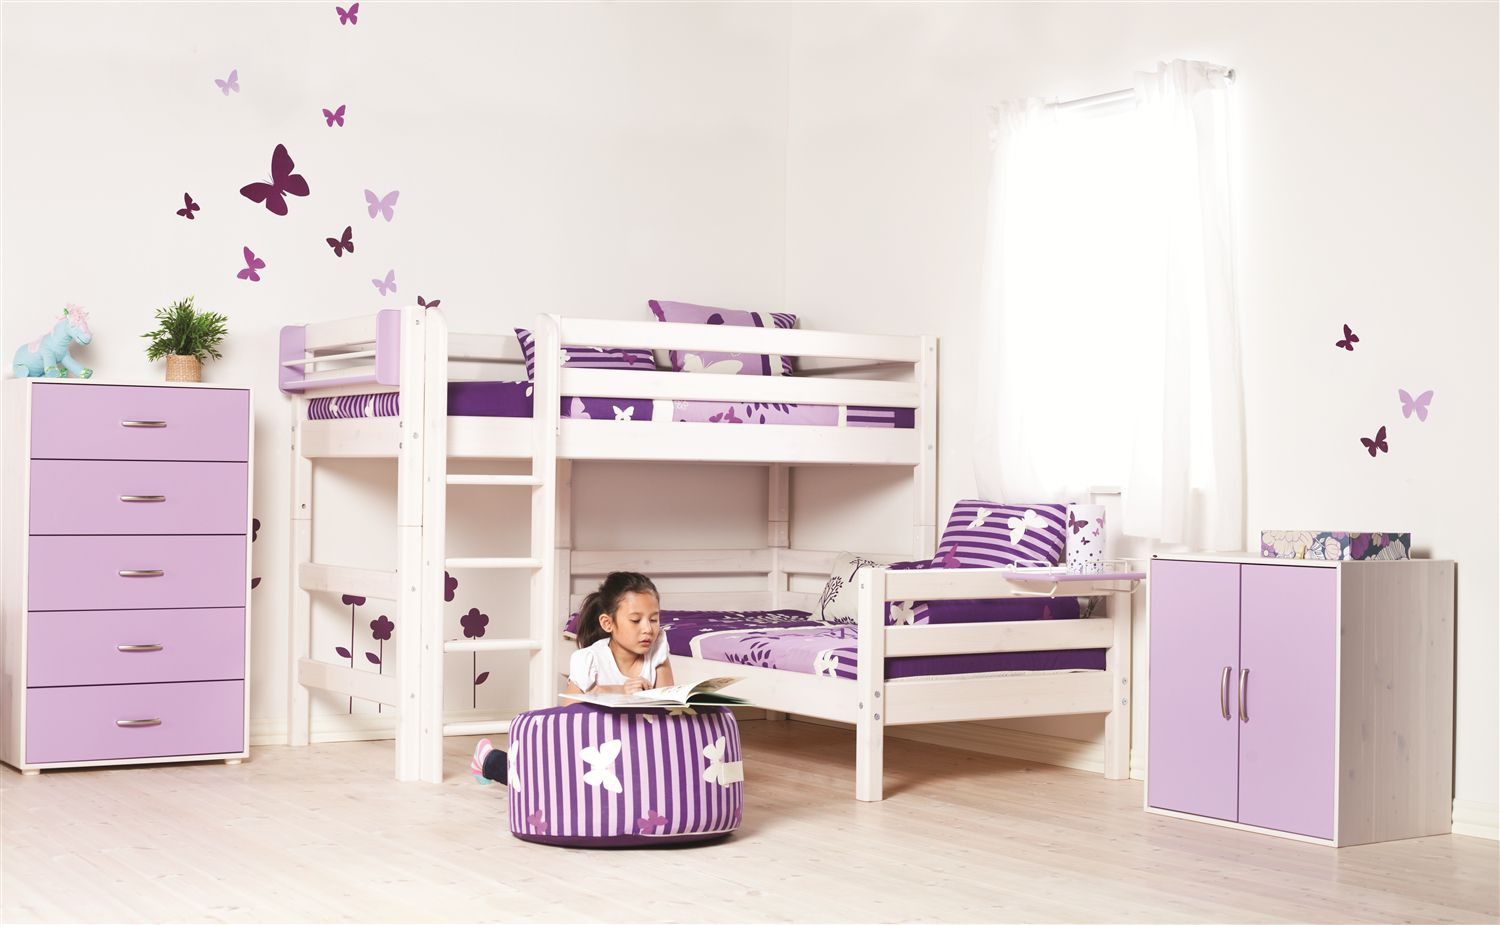 Stepped or angled bunk beds with ladder